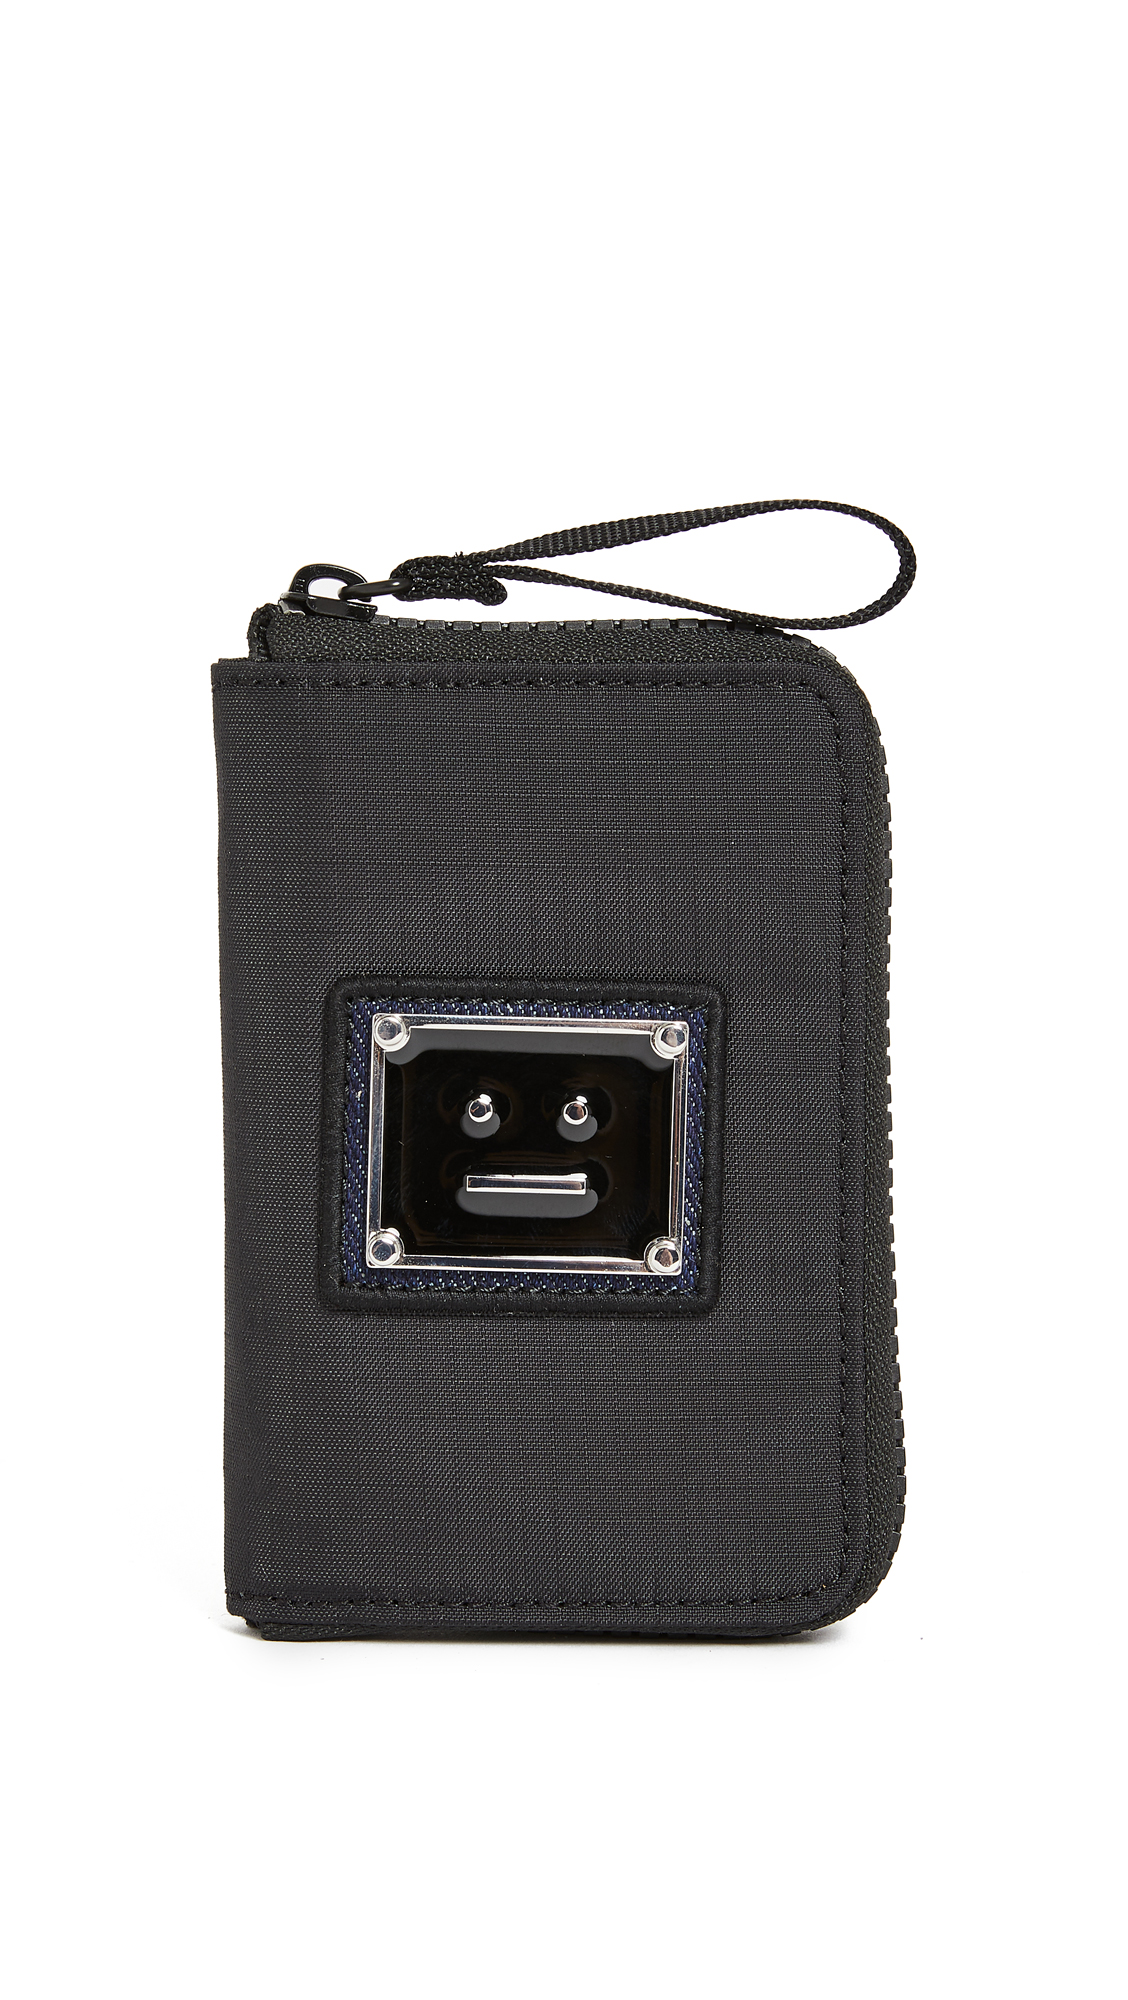 Acne Studios Acton Plaque Face Wallet